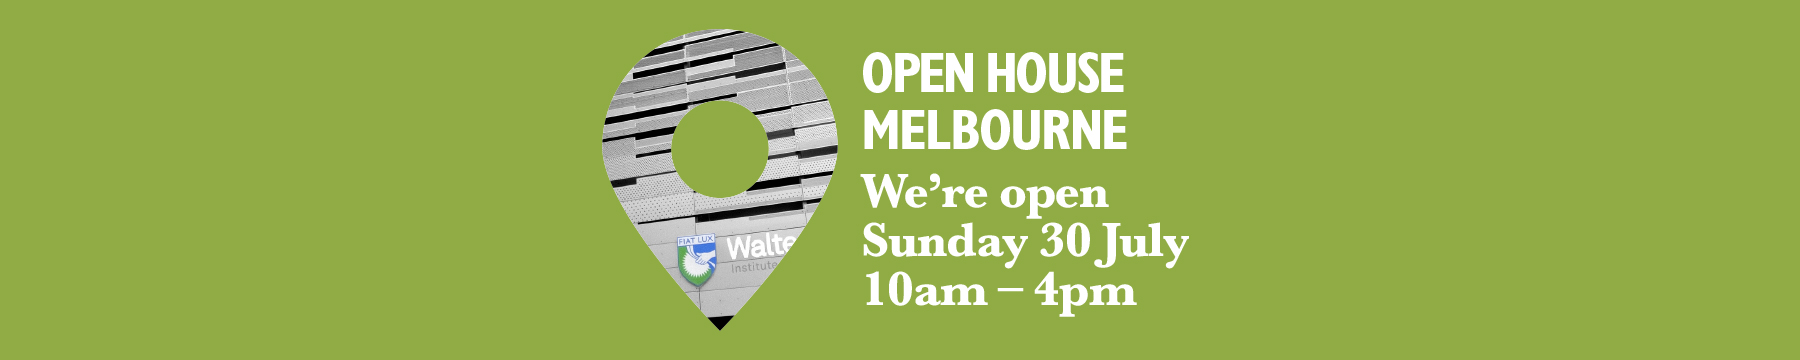 Open House Melbourne 2017 event information